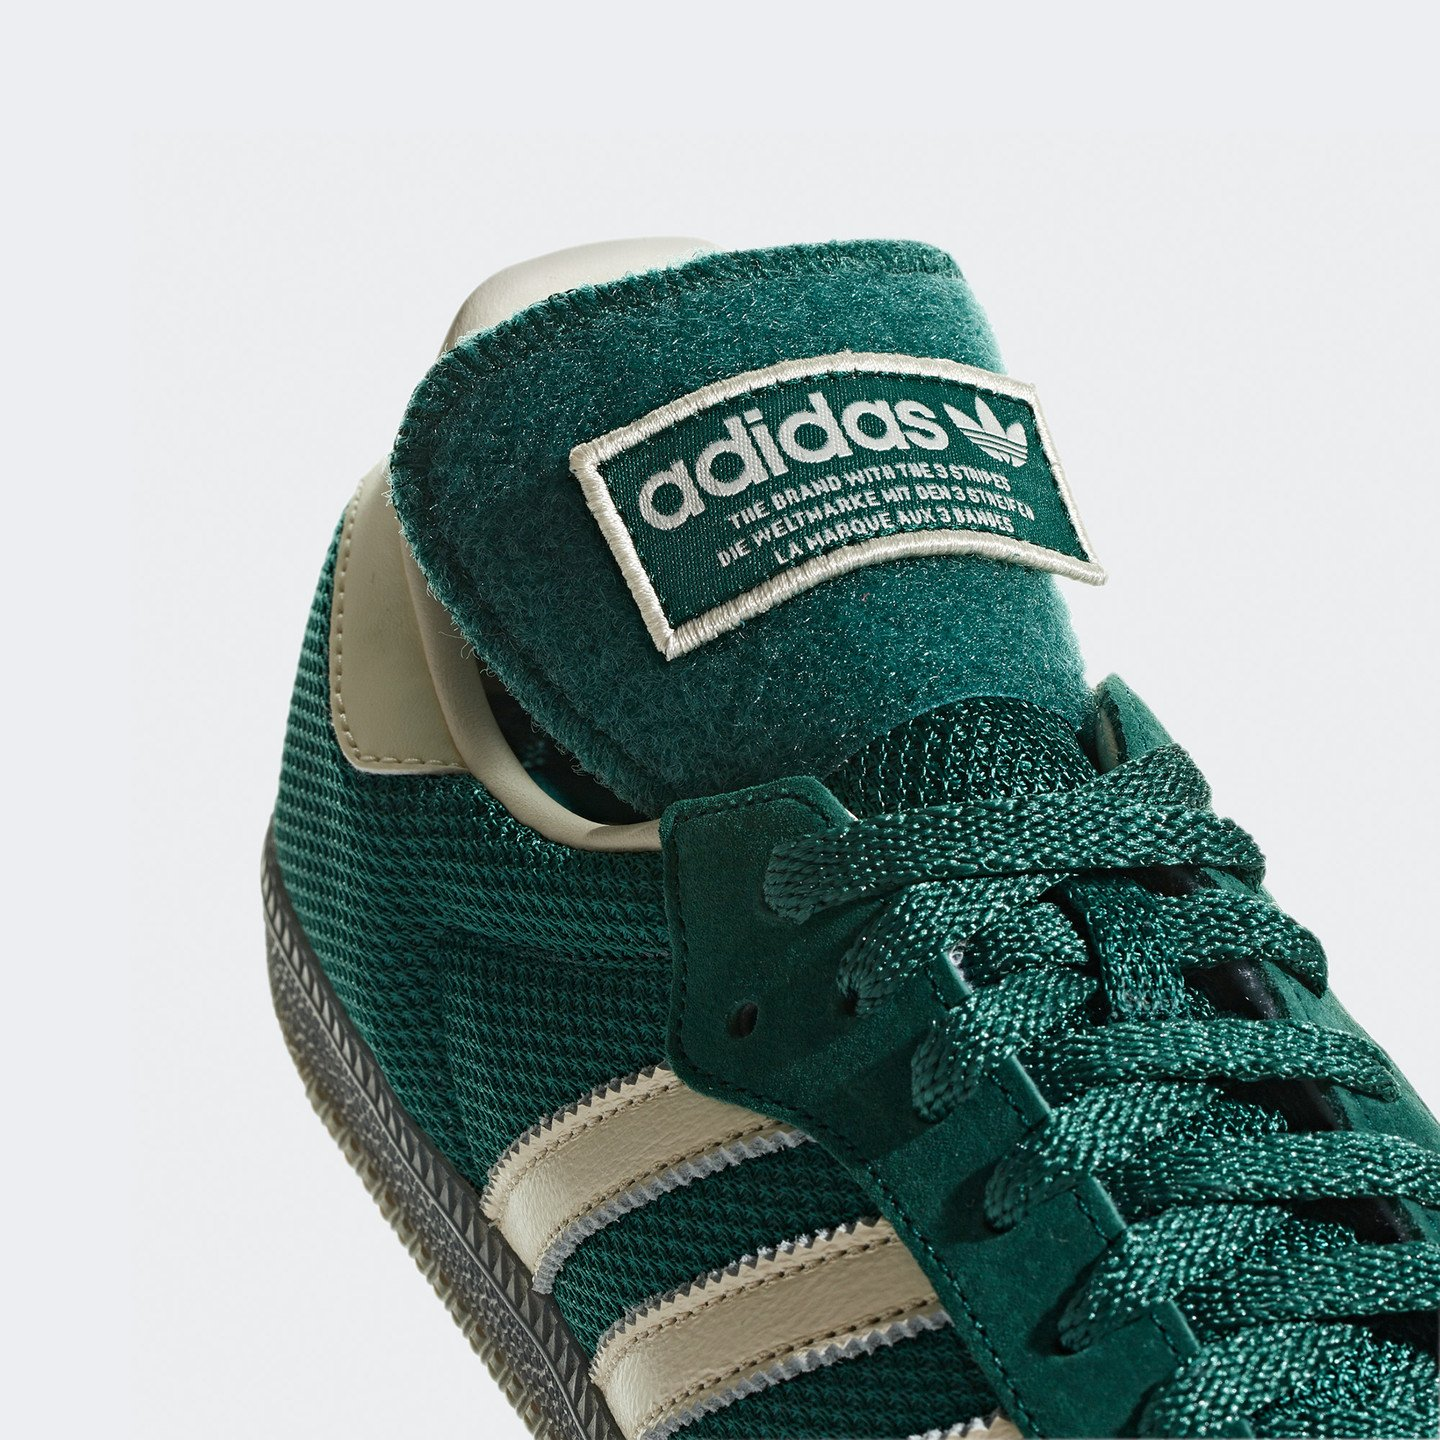 Adidas Samba LT 'Velcro Tongue' Police Green / Off White B44674